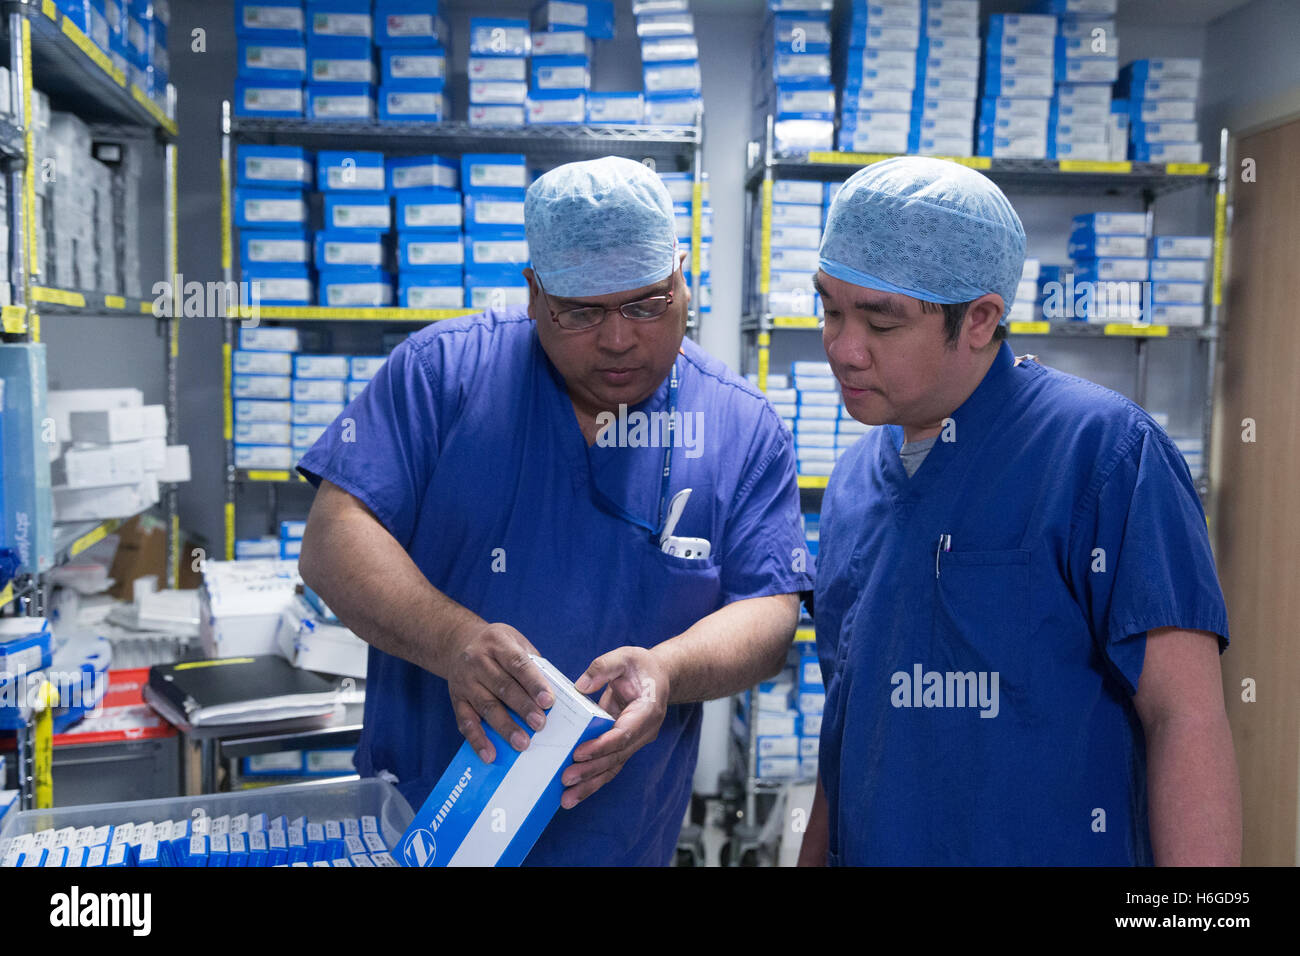 Two nurses in scrubs check medical equipment in the hospital storeroom including hip replacement sterile packs - Stock Image